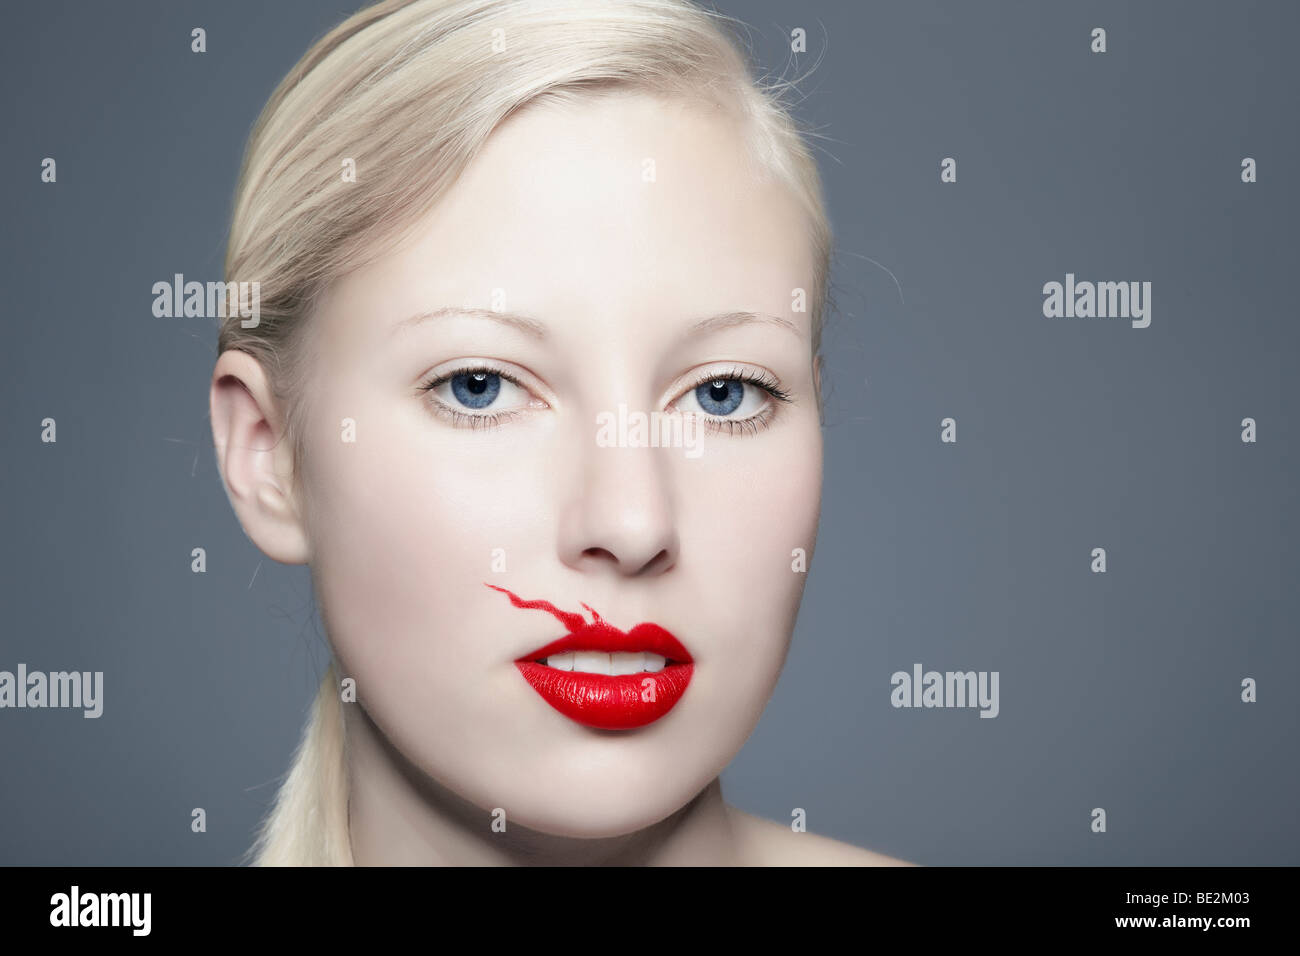 Portrait of a young blond woman with lipstick bleeding above her lip looking towards the viewer, imperfect, beauty - Stock Image